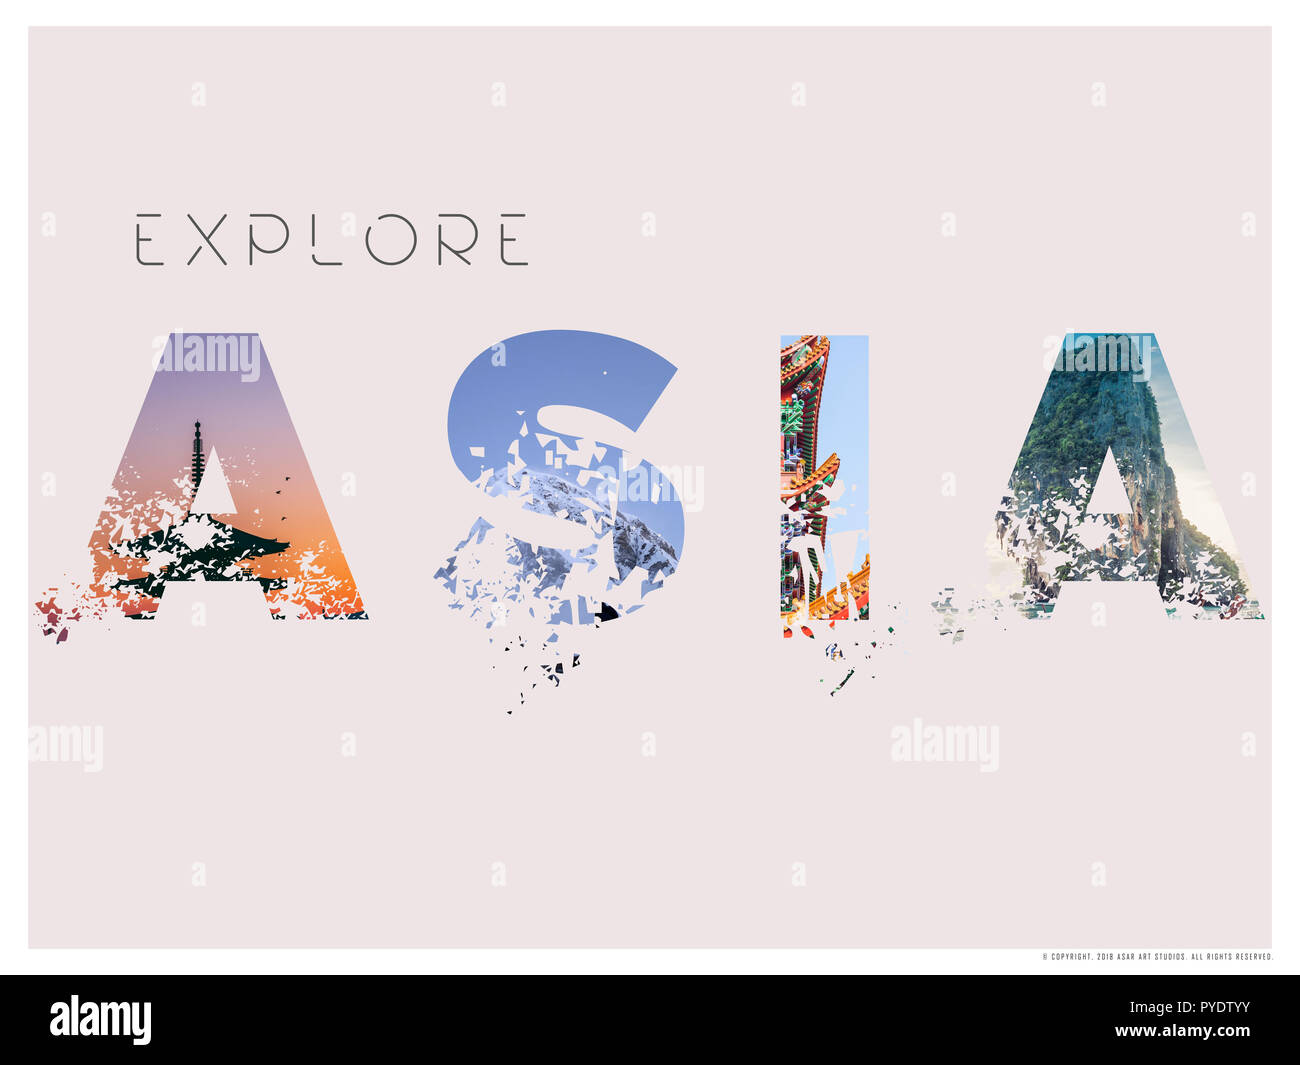 Explore Asia Minimalist Travel Poster.jpg - PYDTYY 1PYDTYY - Stock Image